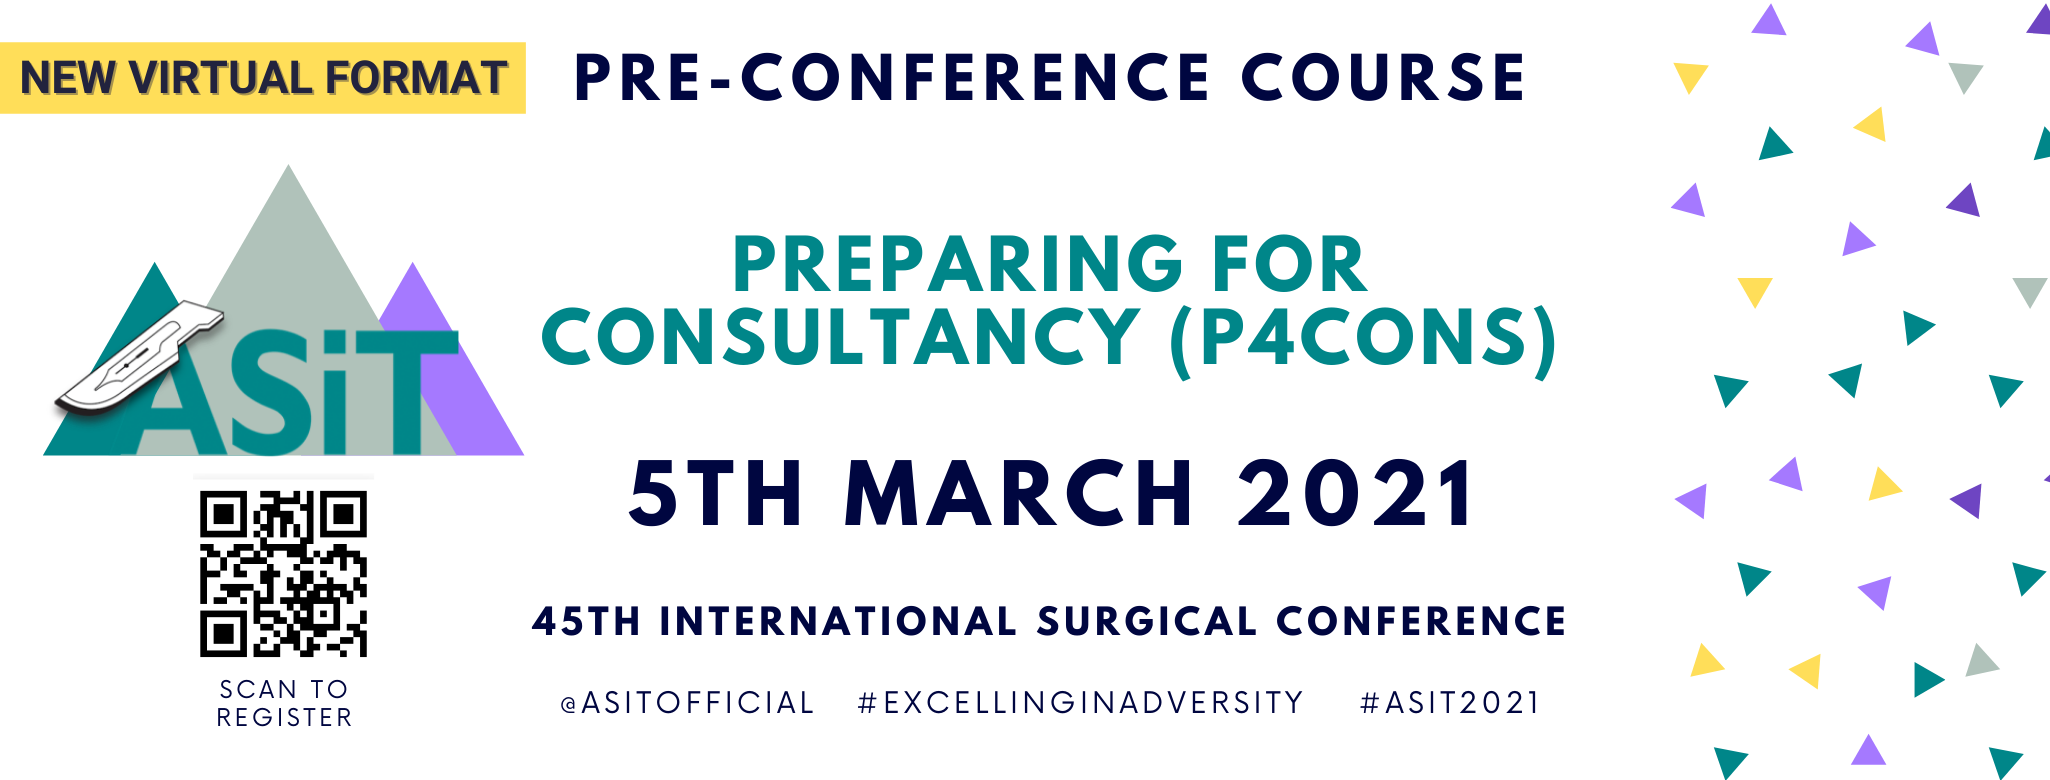 ASiT Preparing for Consultancy (P4Cons): Pre-Conference Course